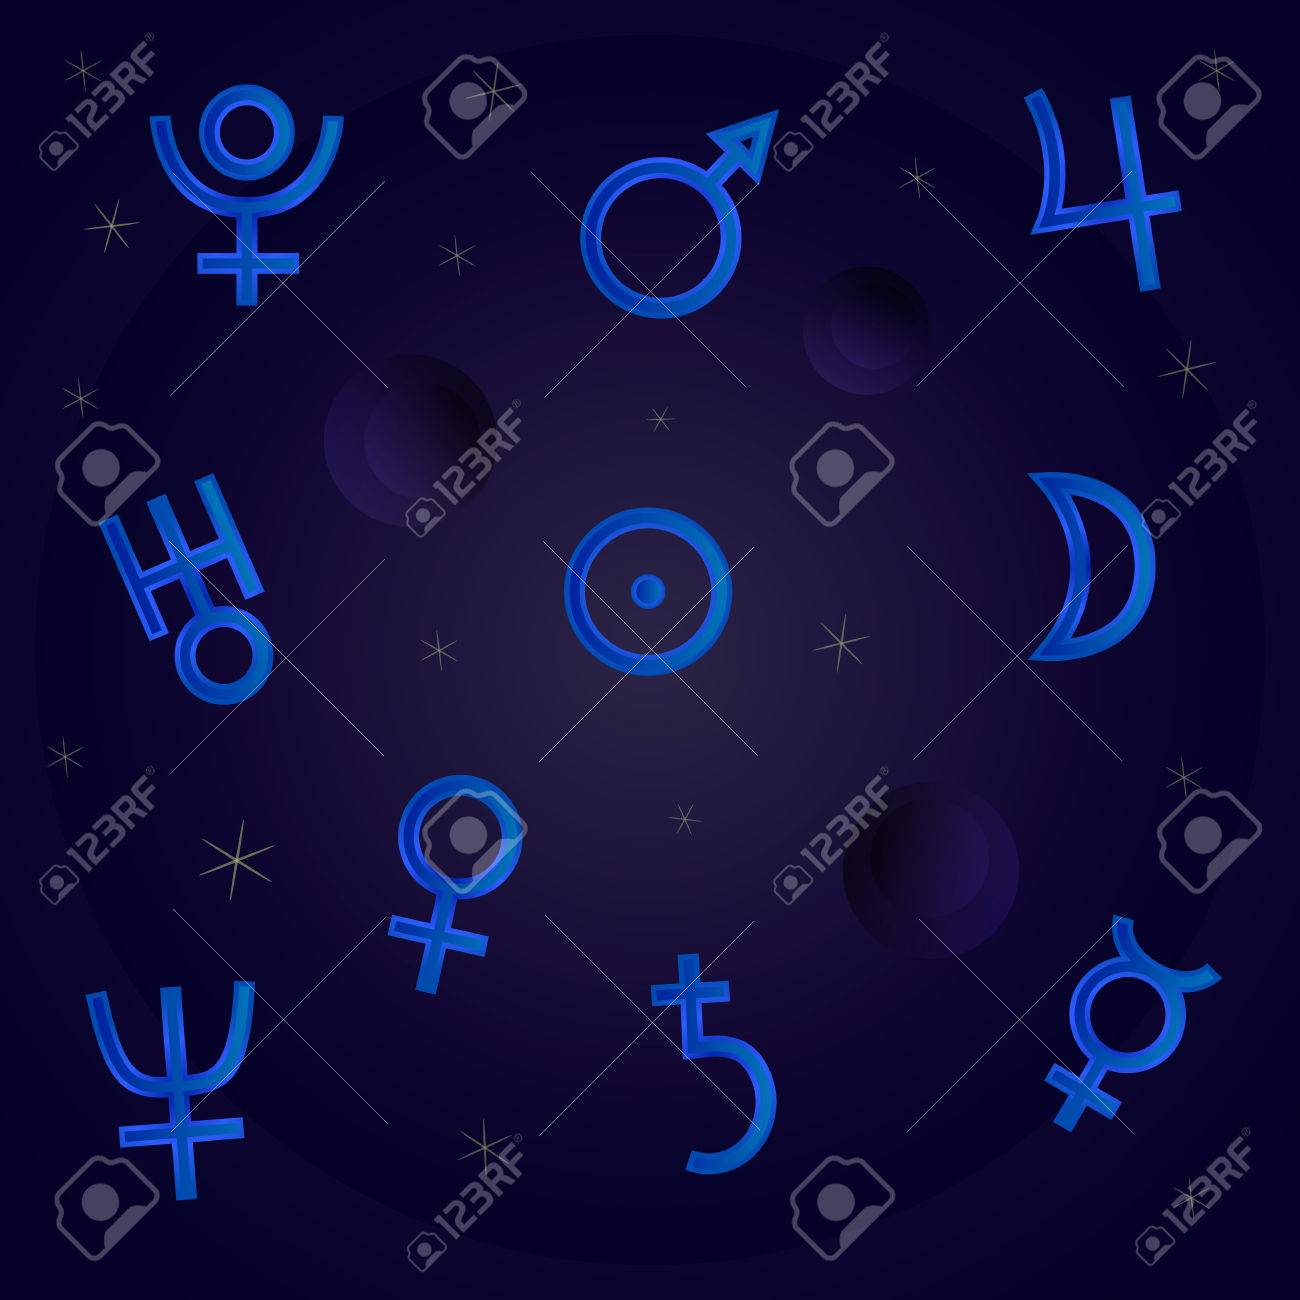 Symbols Of The Planets In The Night Sky With The Stars Royalty Free